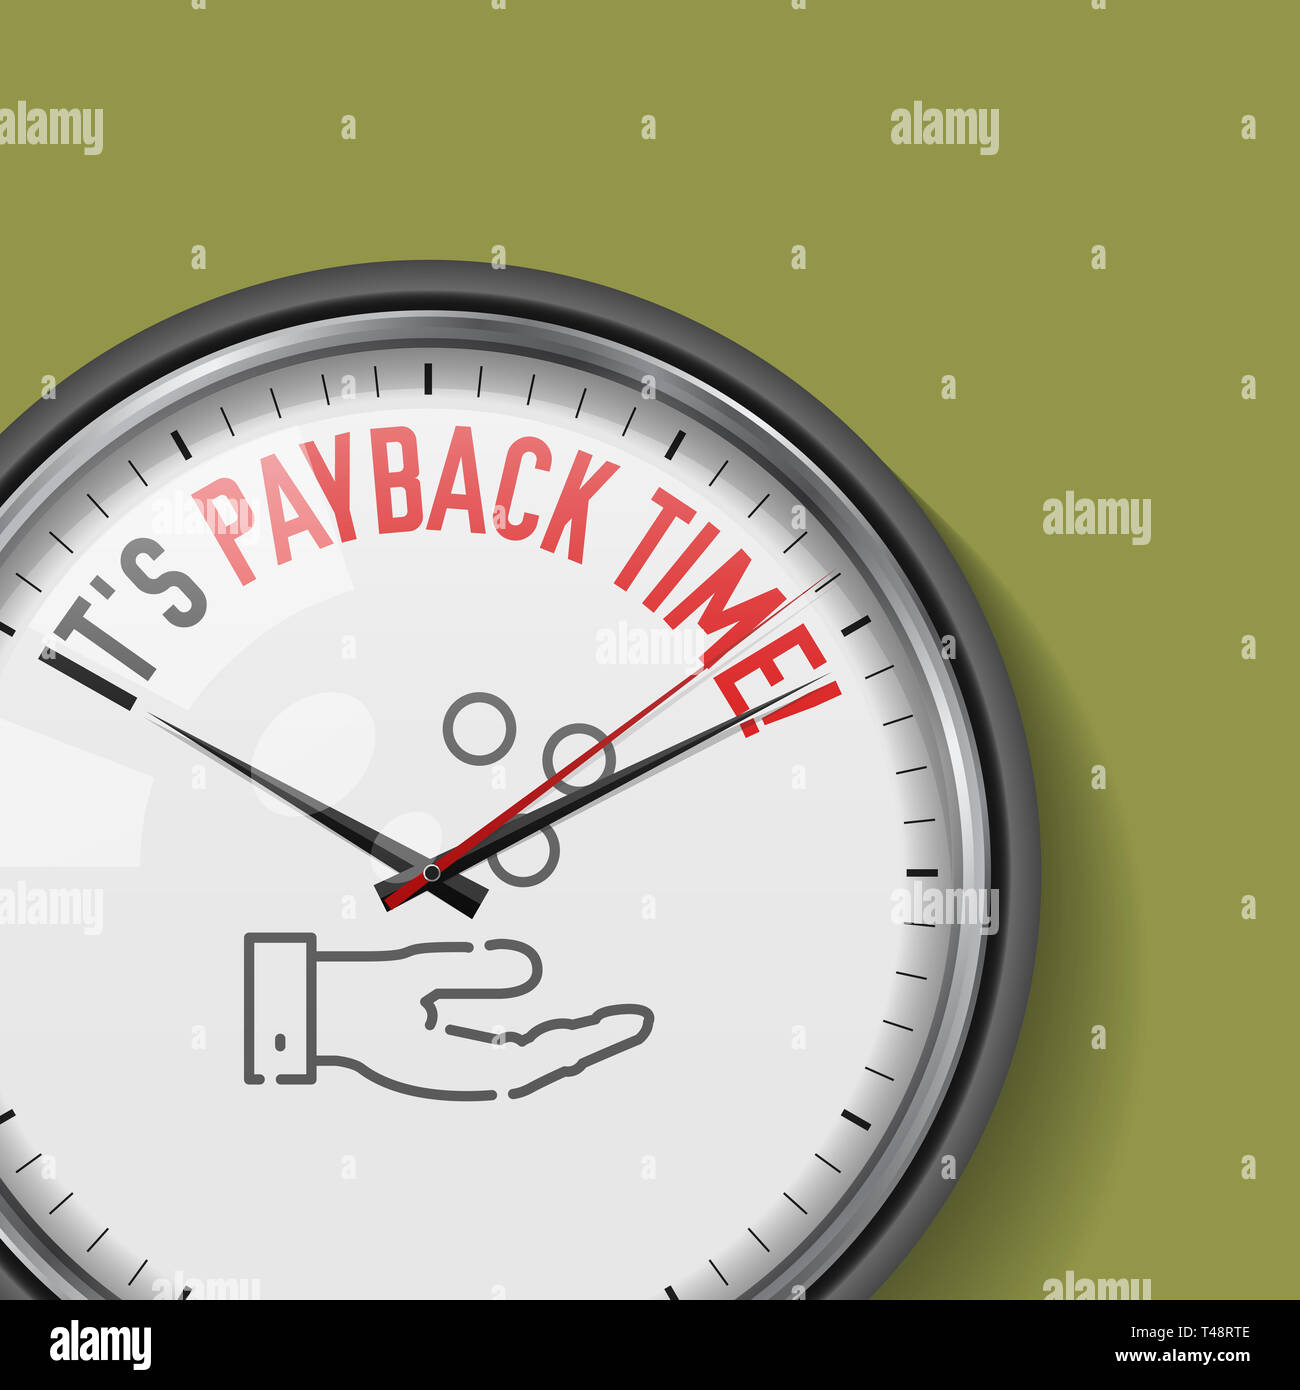 It's Payback Time. White Clock with Motivational Slogan. Analog Metal Watch with Glass. Illustration Isolated on Solid Color Background. Hand Catching - Stock Image